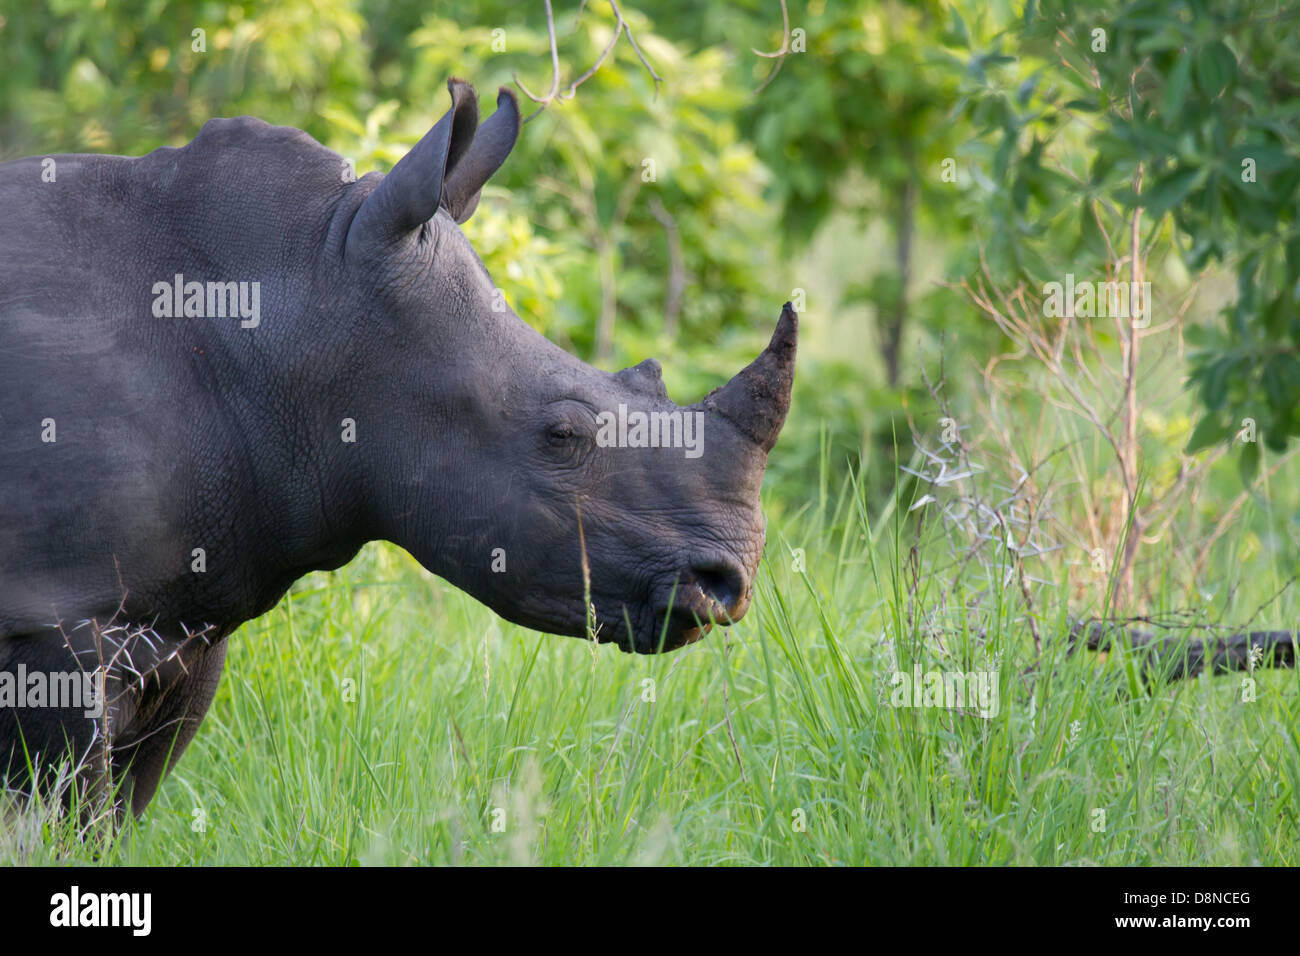 Rhino sniffs the air - Stock Image